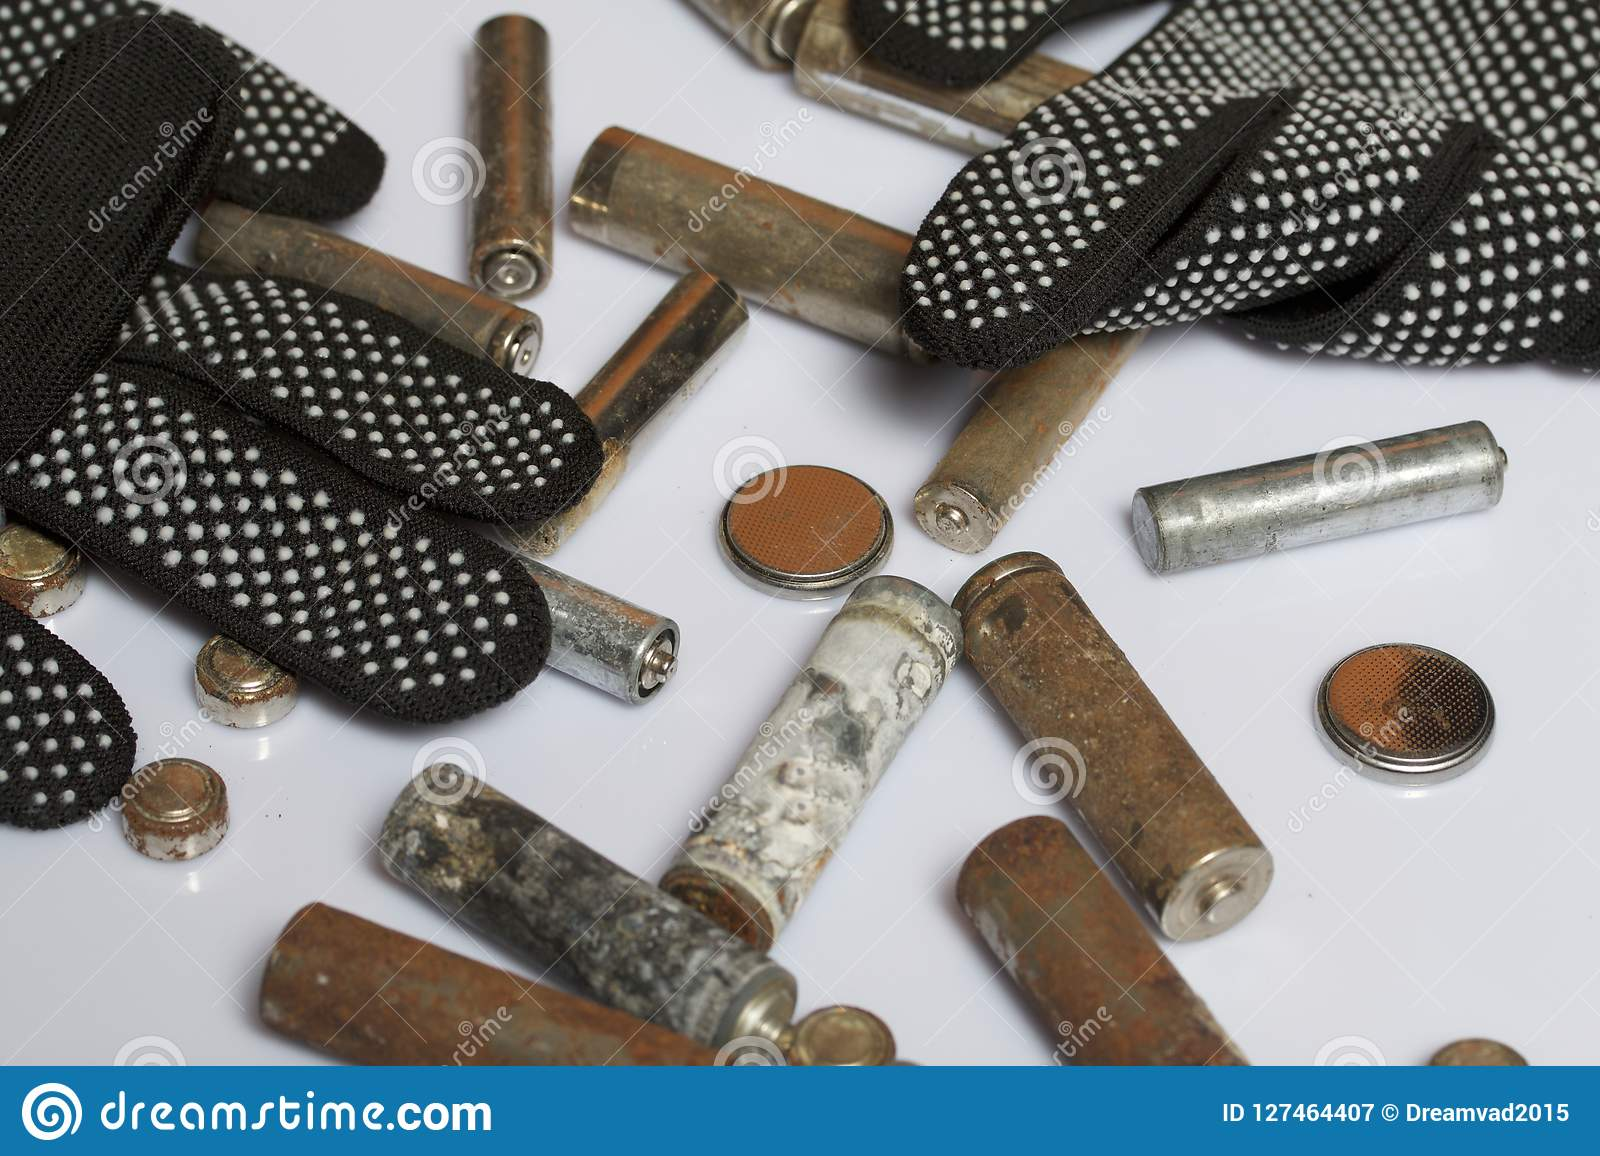 Used finger-wound batteries covered with corrosion. They lie on a wooden box. Next working gloves. Recycling.